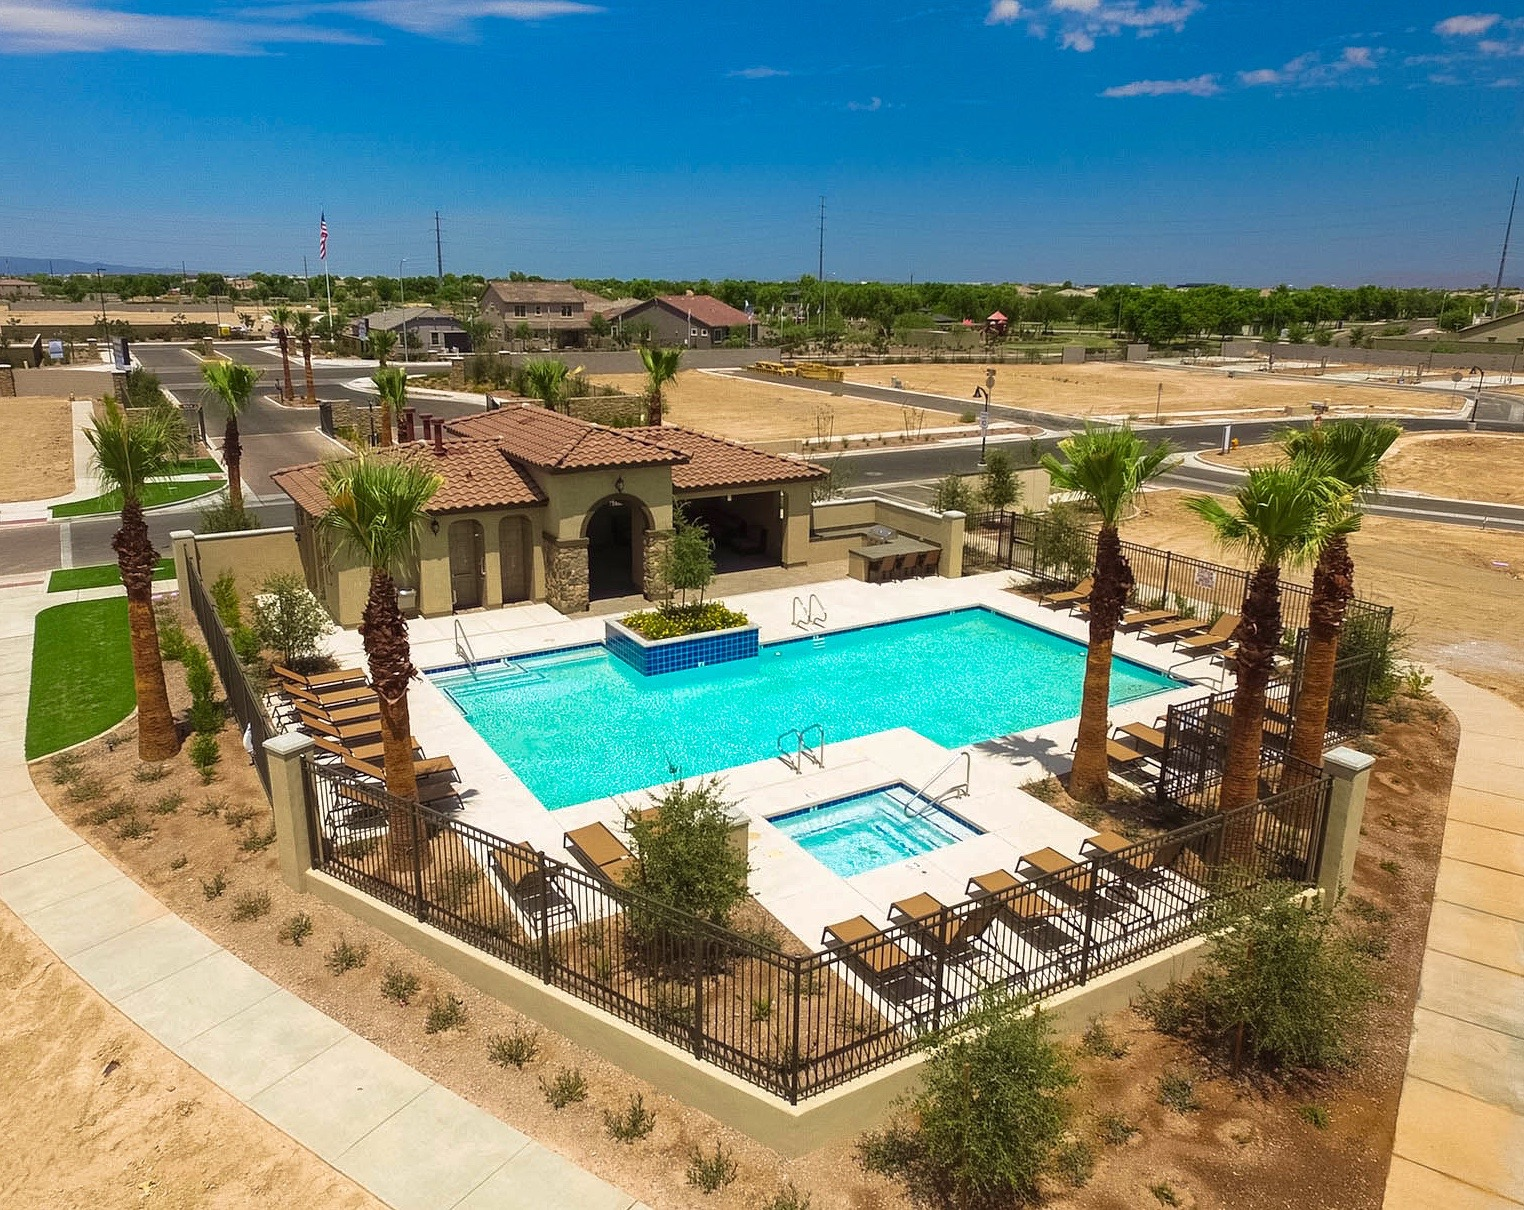 Inspiration At Layton Lakes New Gated Community In South Chandler Arizona Pricing Starting At